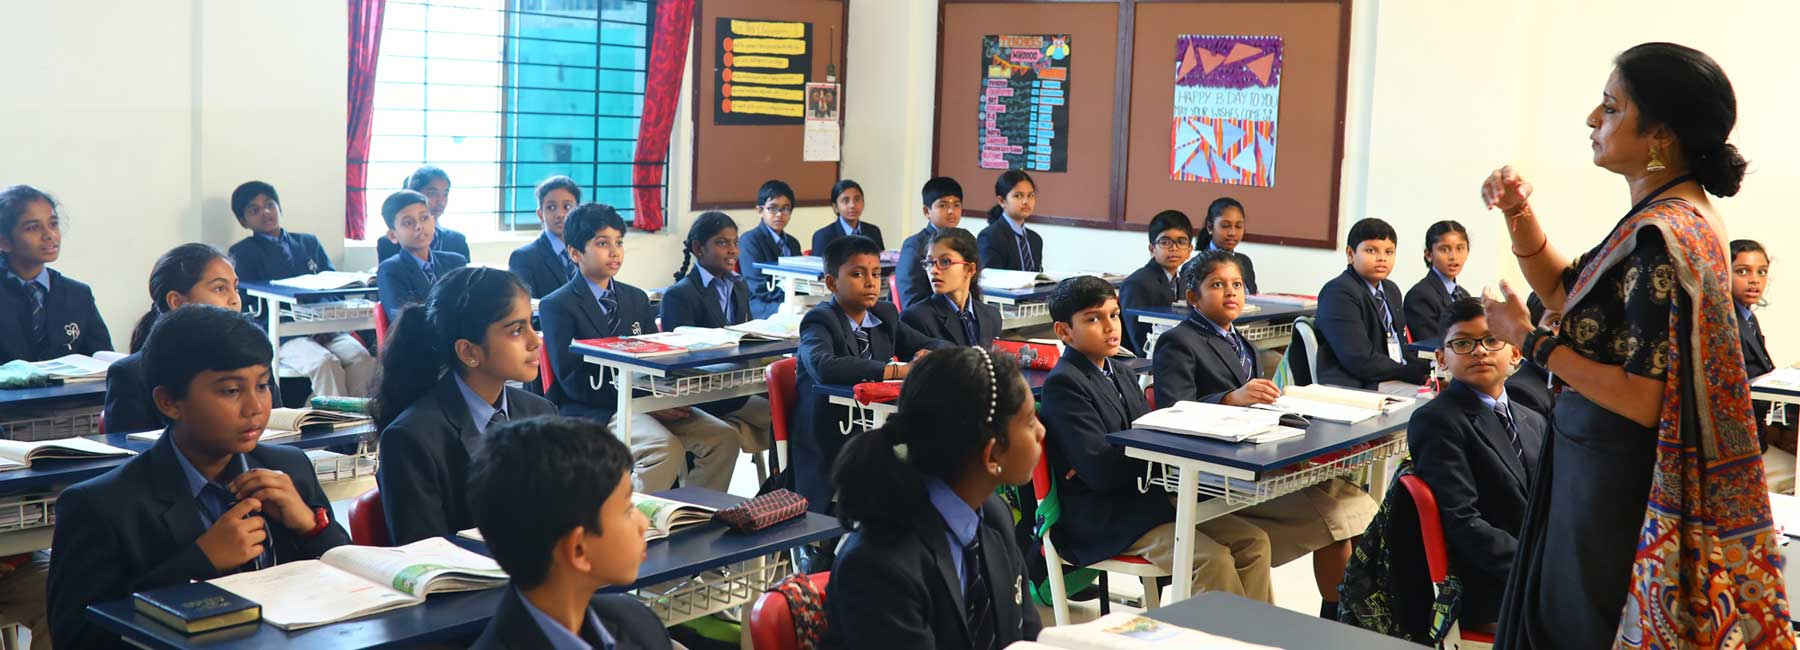 Top School in Bangalore, Sherwood High, Sherwood High Classrooms